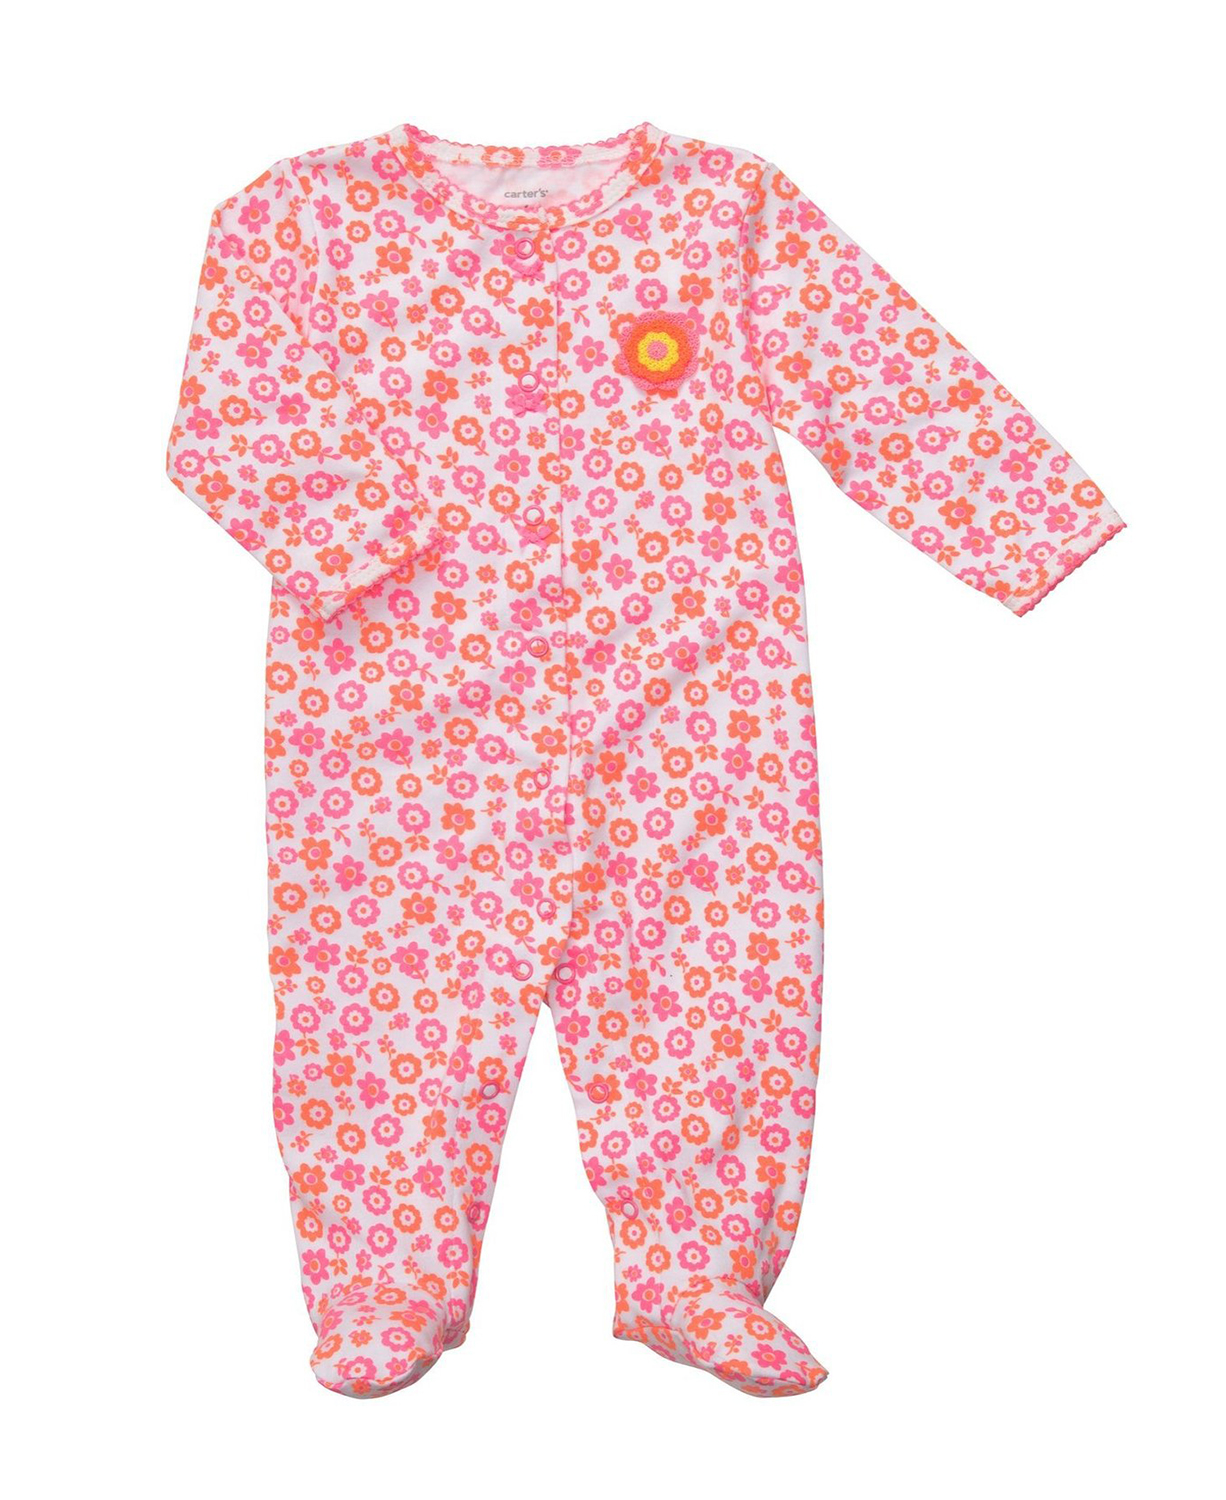 b3d210eaf Carters Floral Snap Up Sleep PINK Baby Sleepers - Baby Clothes